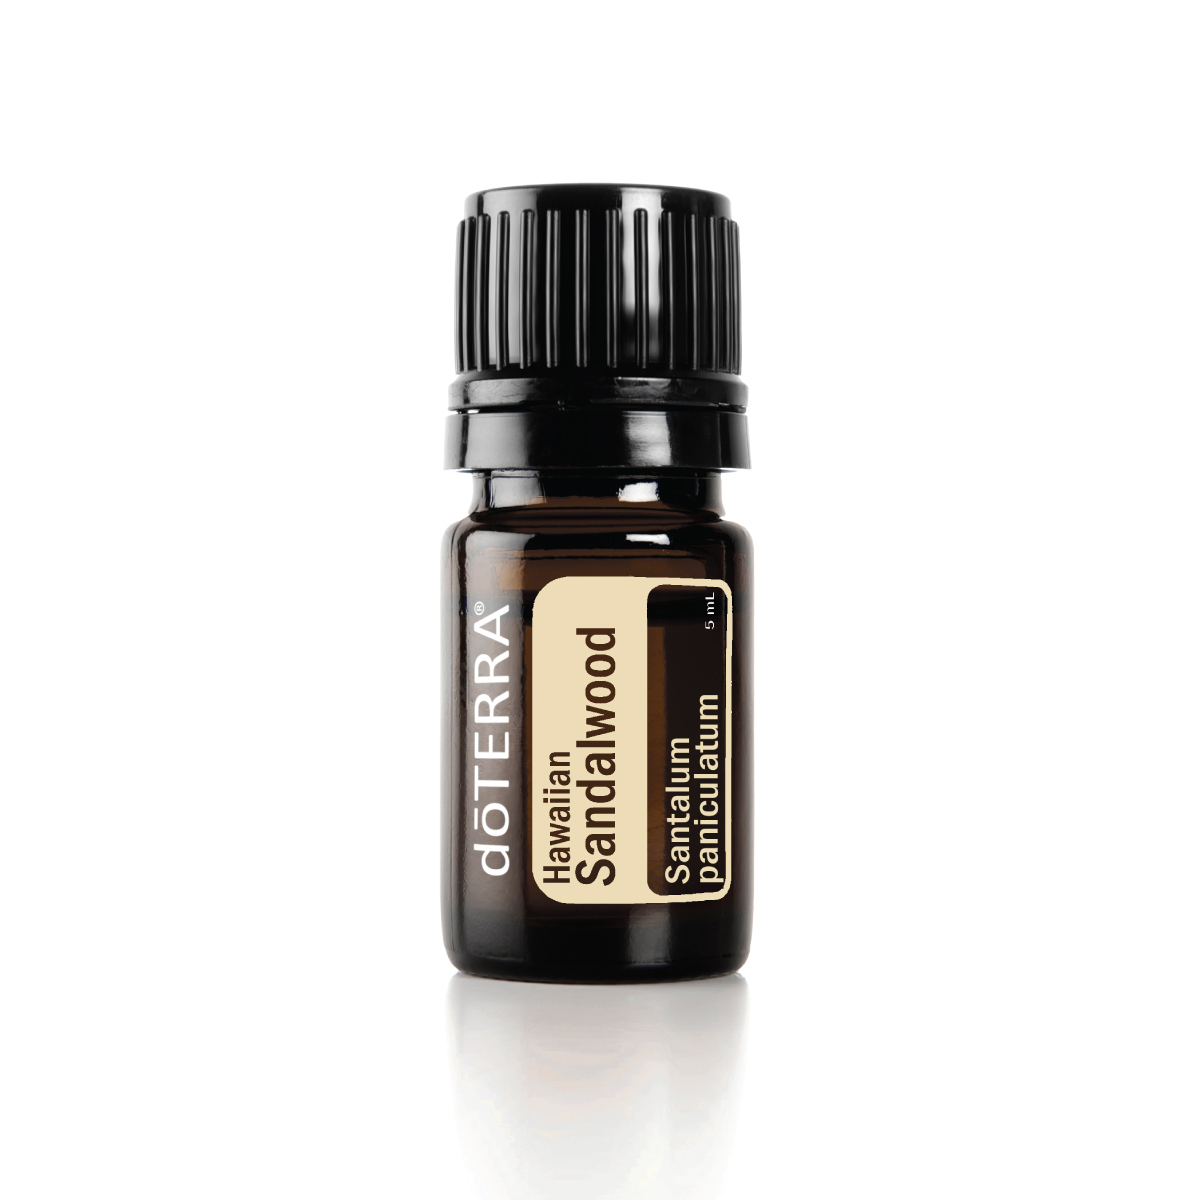 Bottle of doTERRA Hawaiian Sandalwood oil. What is Hawaiian Sandalwood oil used for? People often use Hawaiian Sandalwood oil for skin, for meditation, or to create a calm atmosphere.